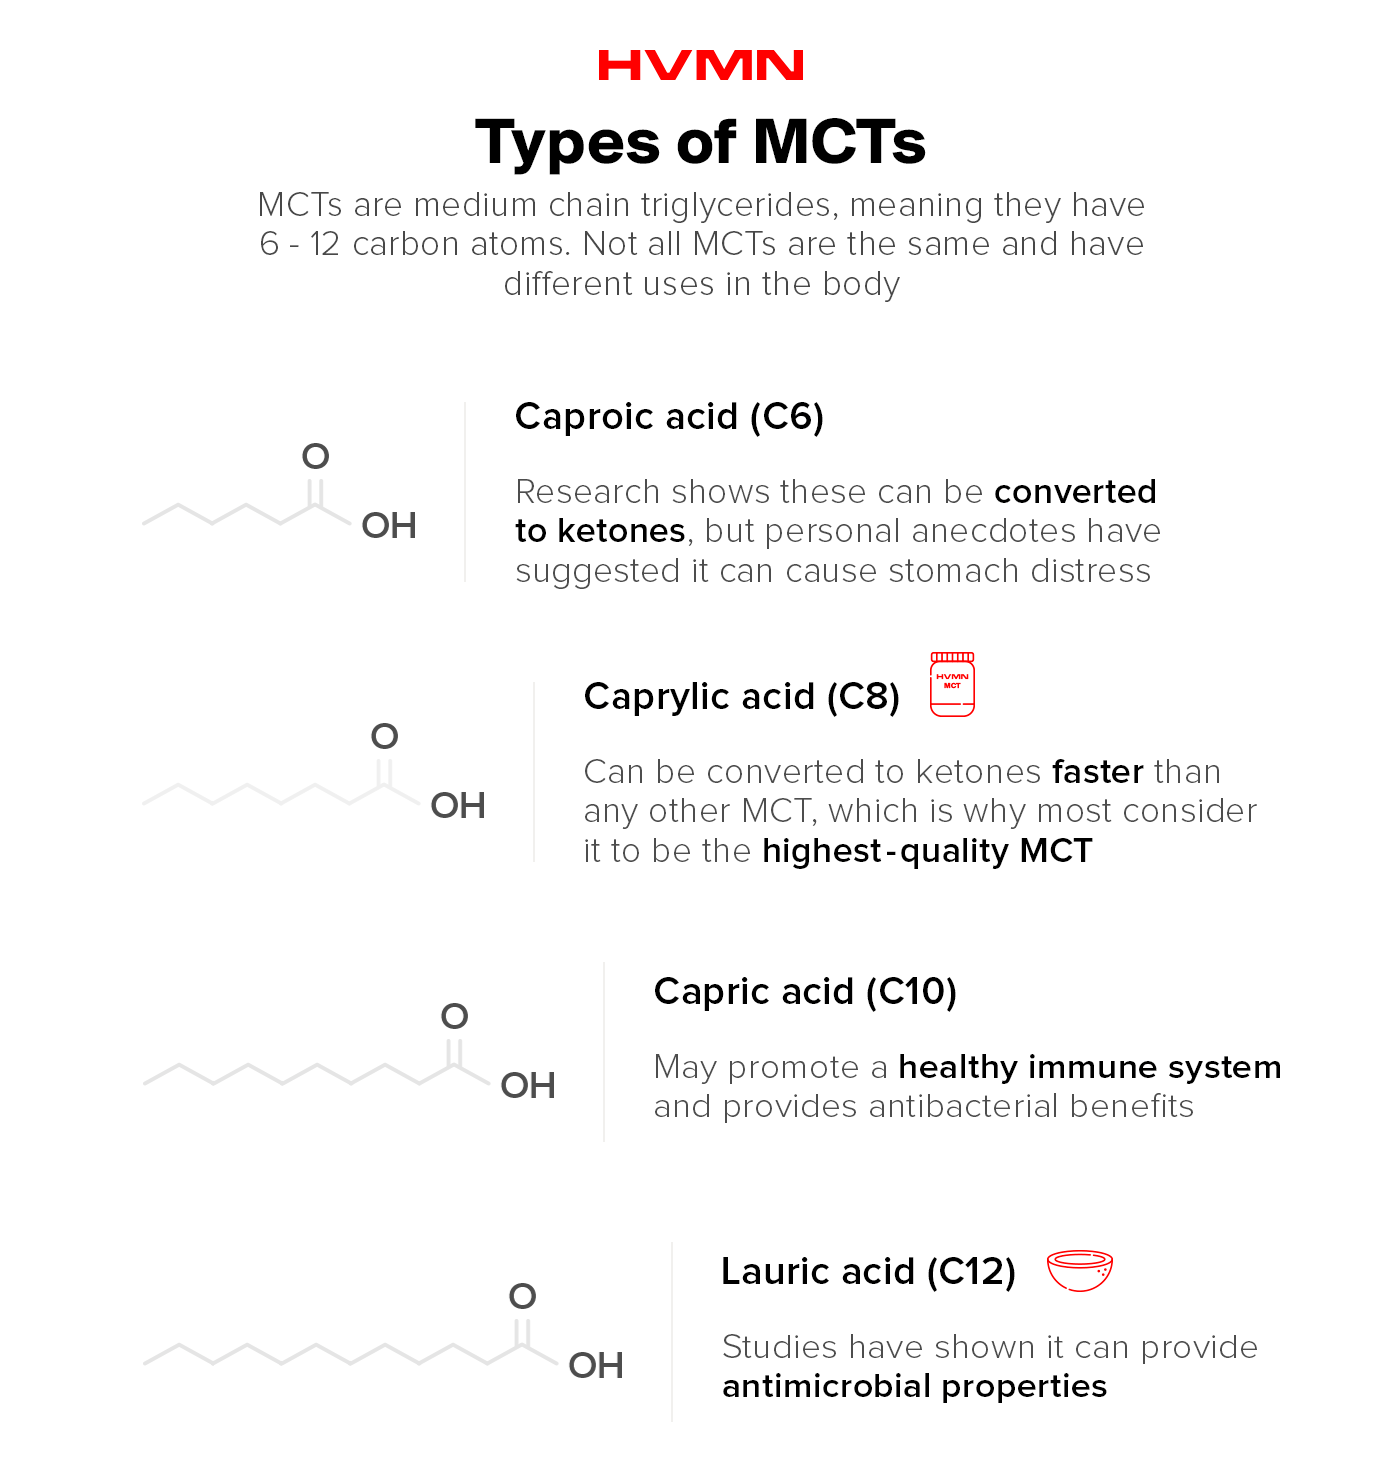 The types of MCTs include Caproic Acid, Caprylic Acid, Capric Acid, and Lauric Acid.